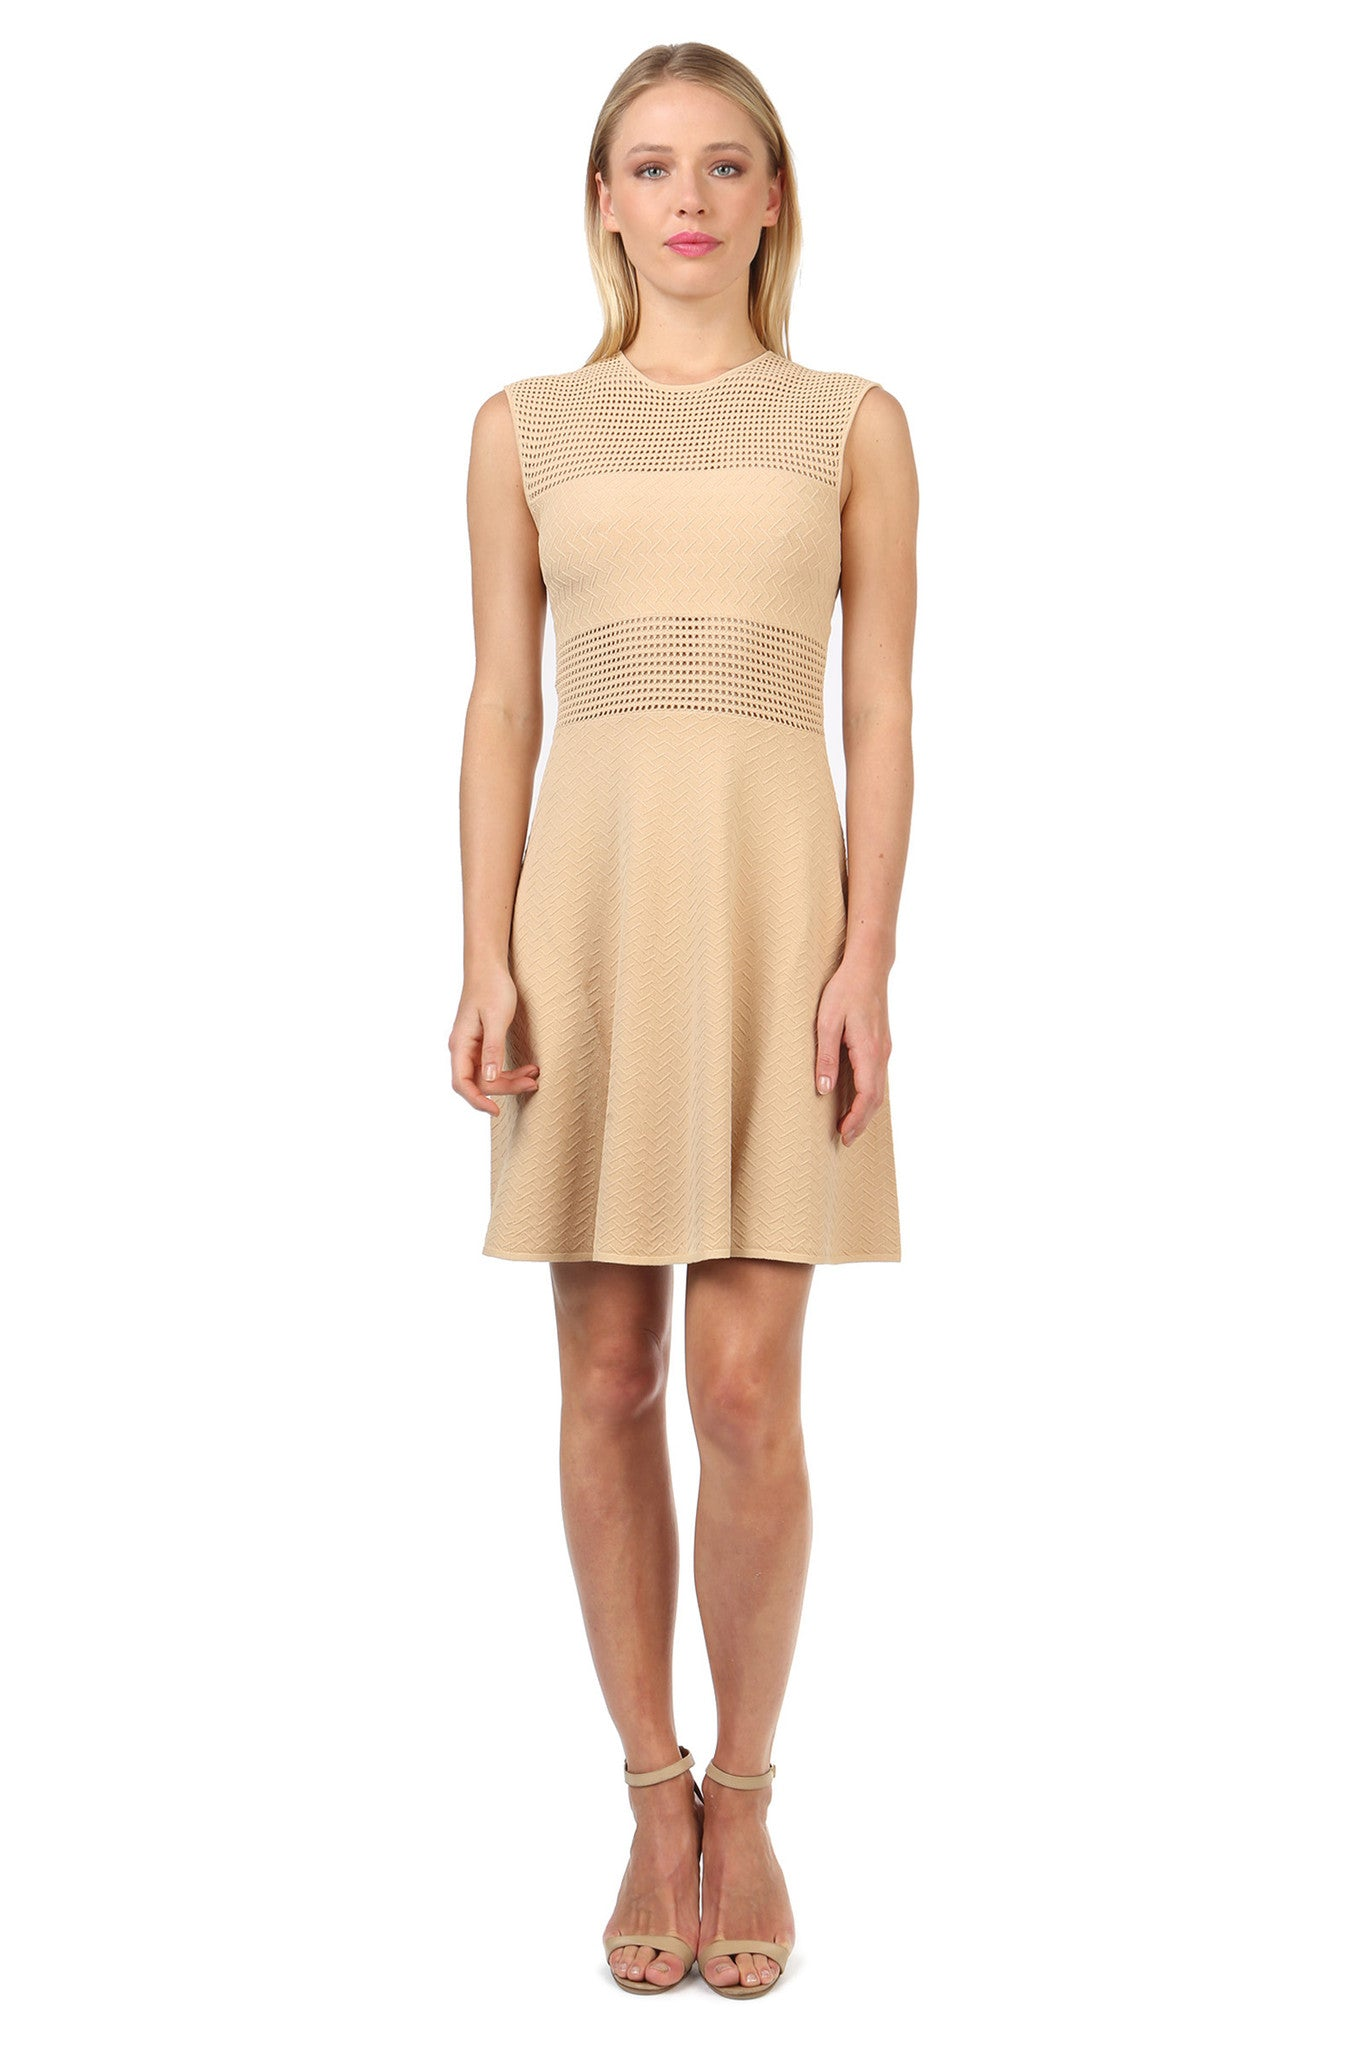 Jay Godfrey Sand Knit Body Con Dress - Front View